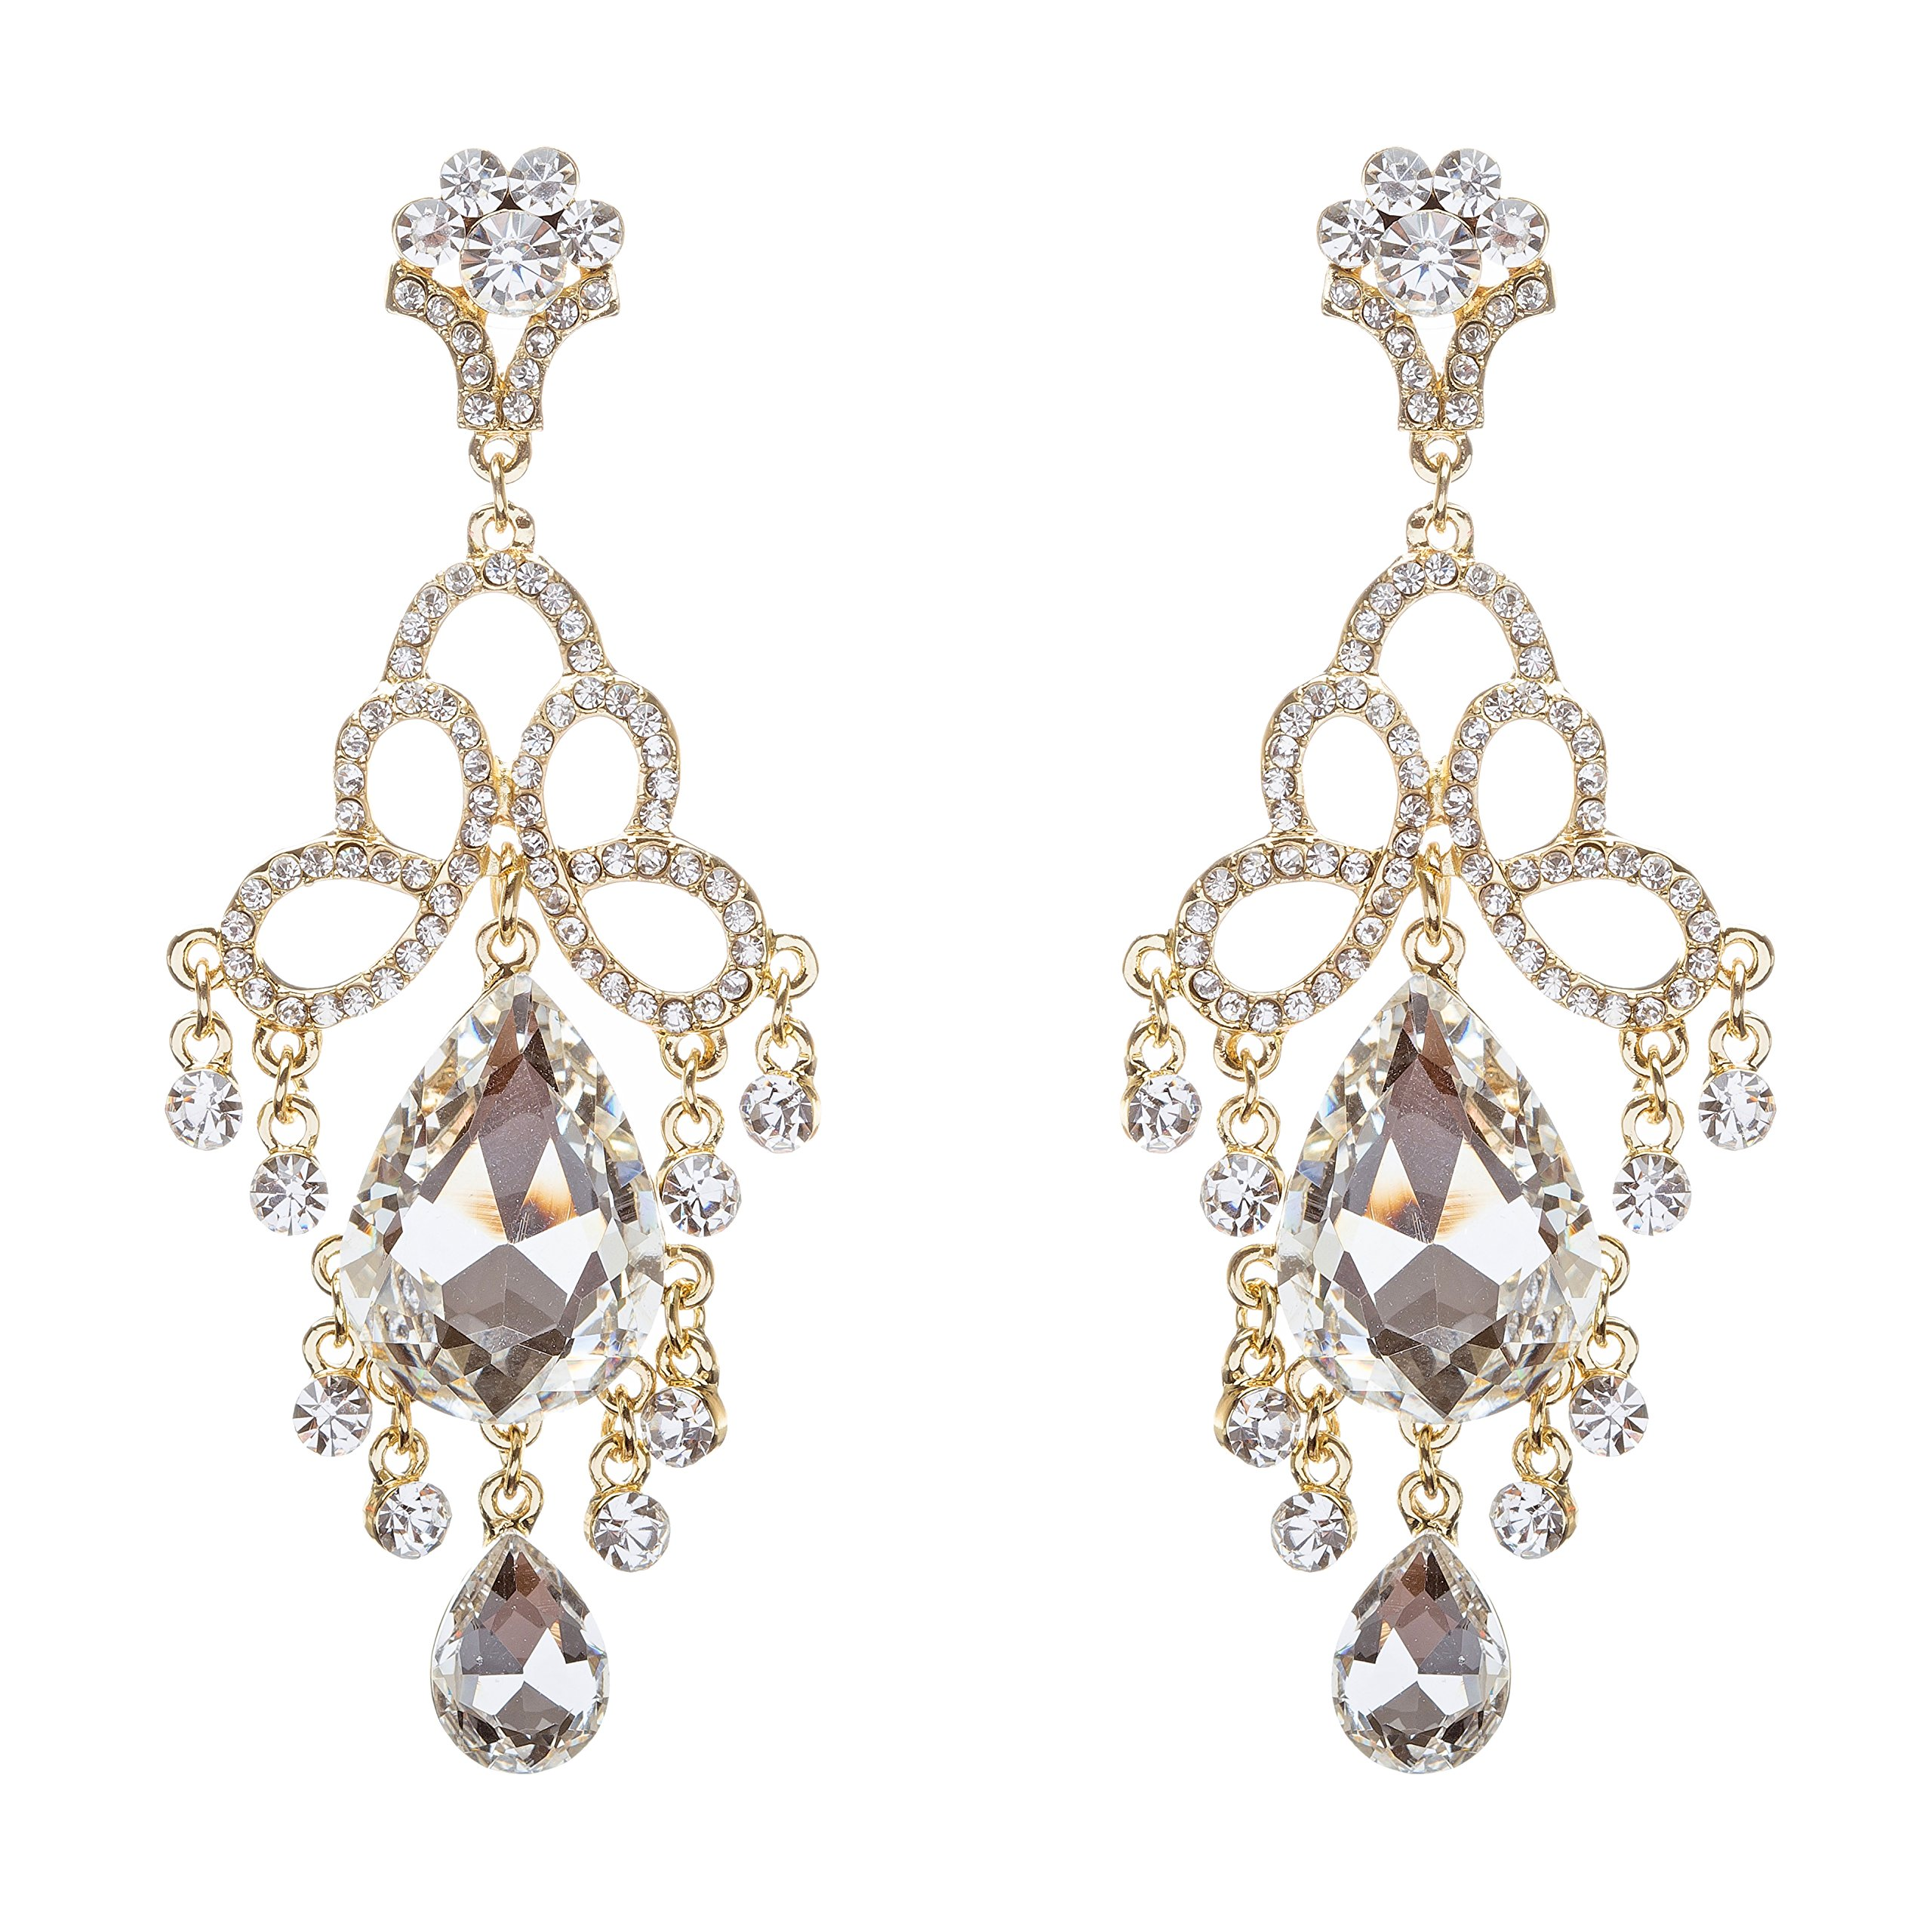 ACCESSORIESFOREVER Women Bridal Wedding Jewelry Crystal Rhinestone Brilliant Loops Design Earrings Gold